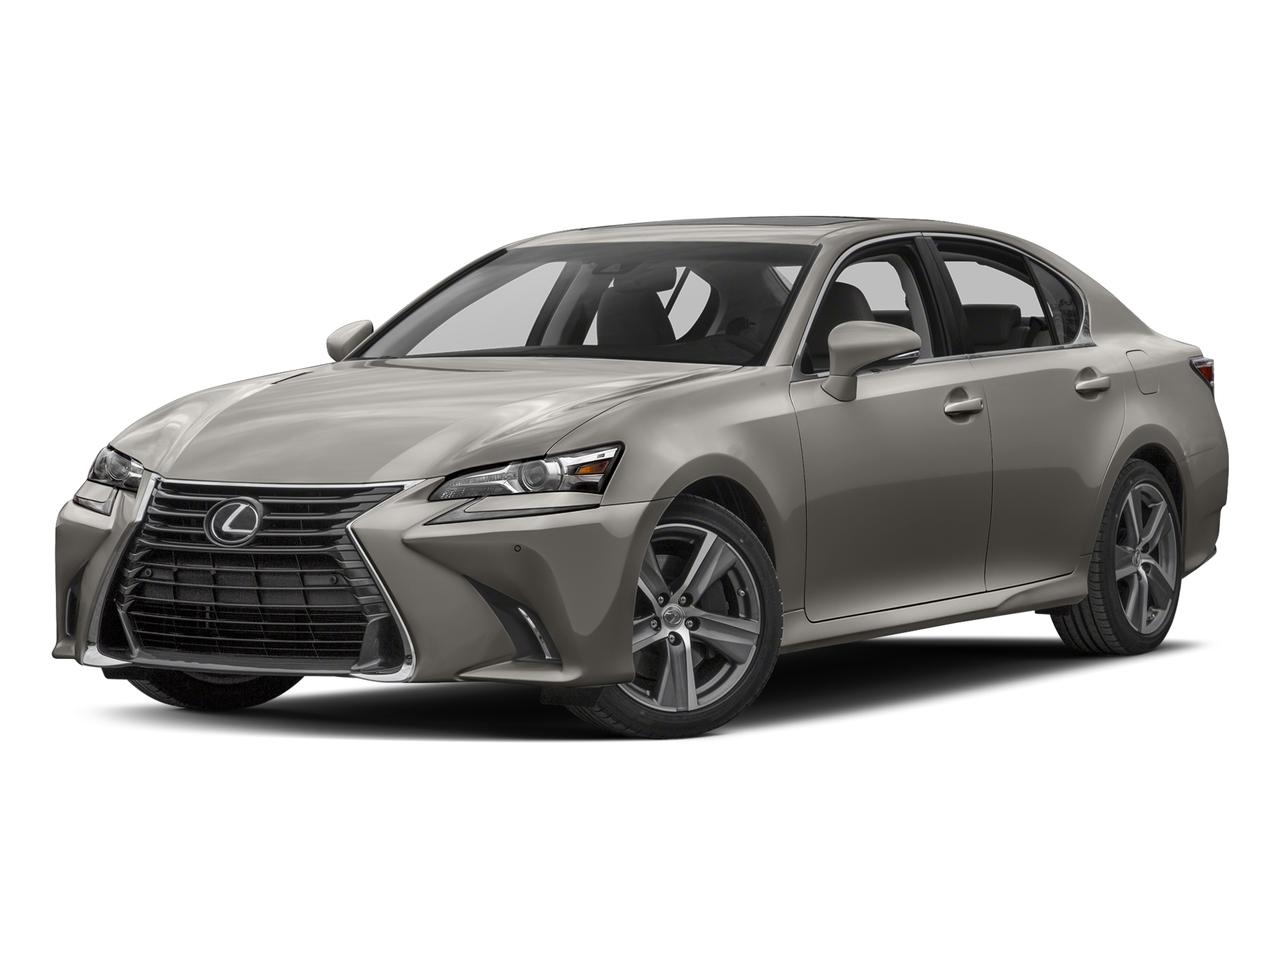 2017 Lexus GS 350 Vehicle Photo in Tucson, AZ 85705